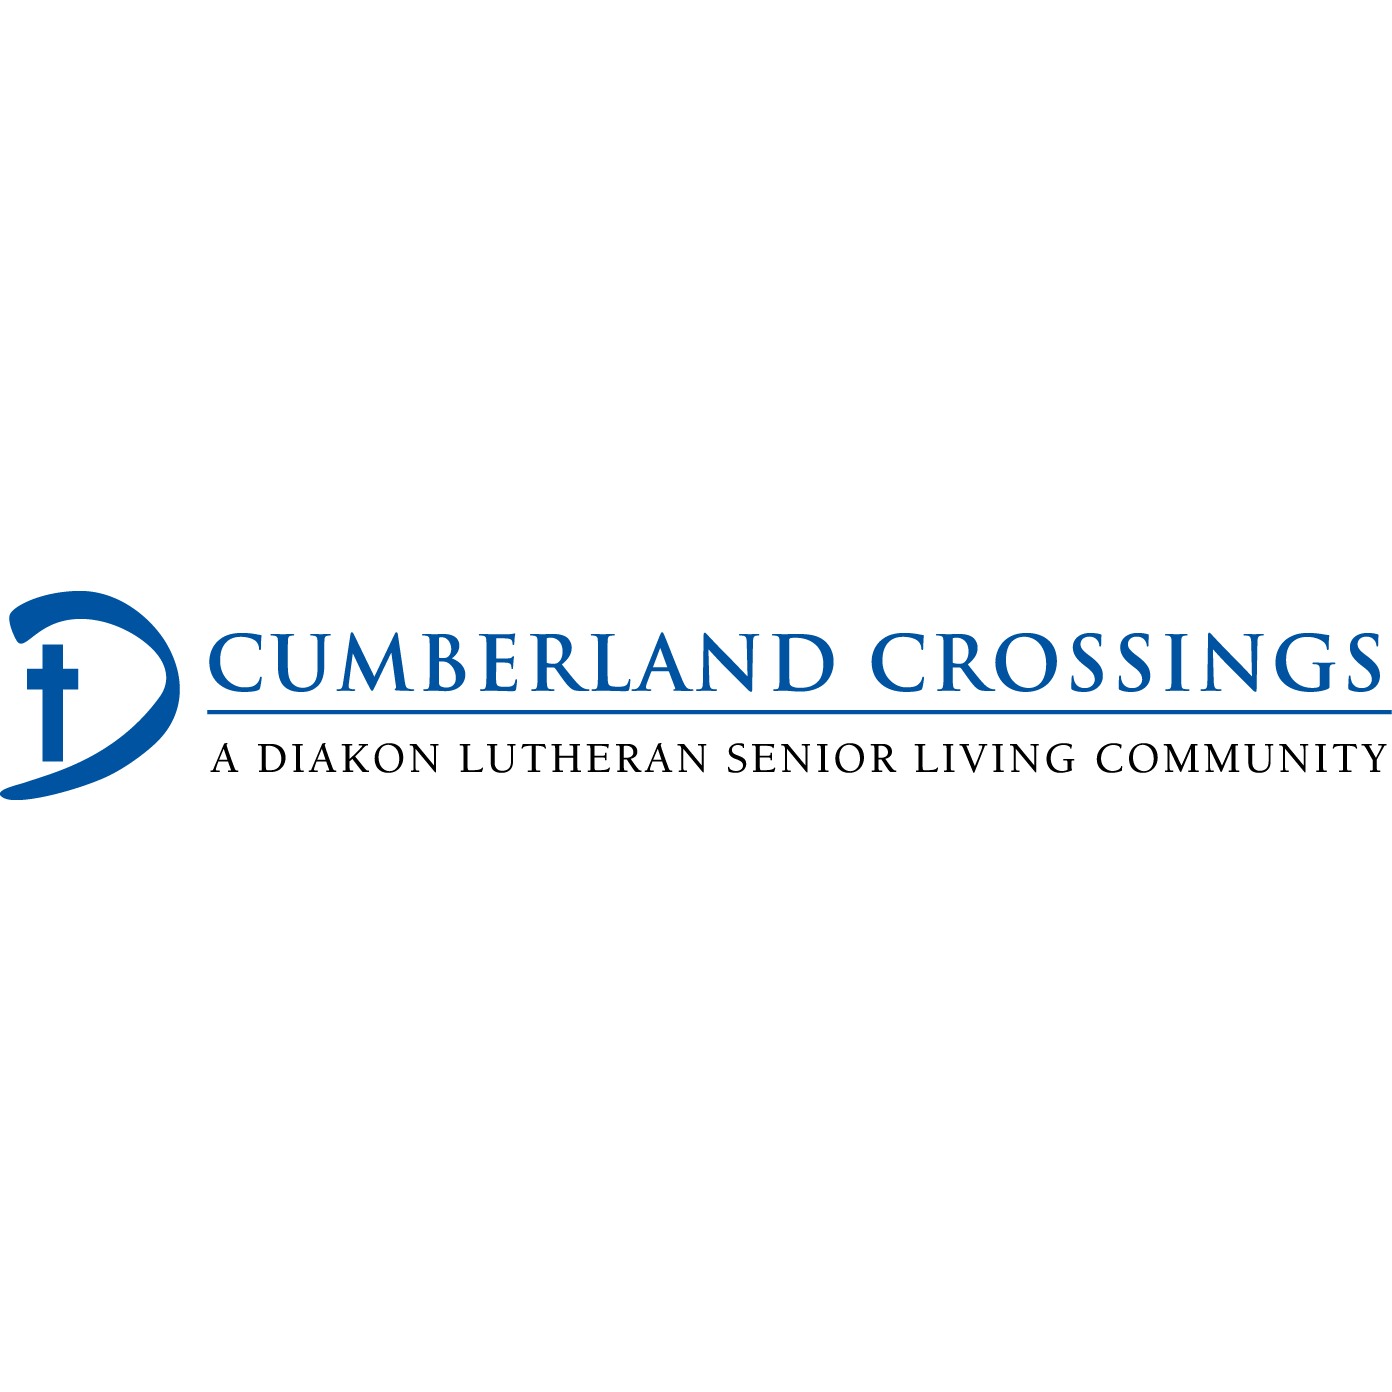 Cumberland Crossings image 1